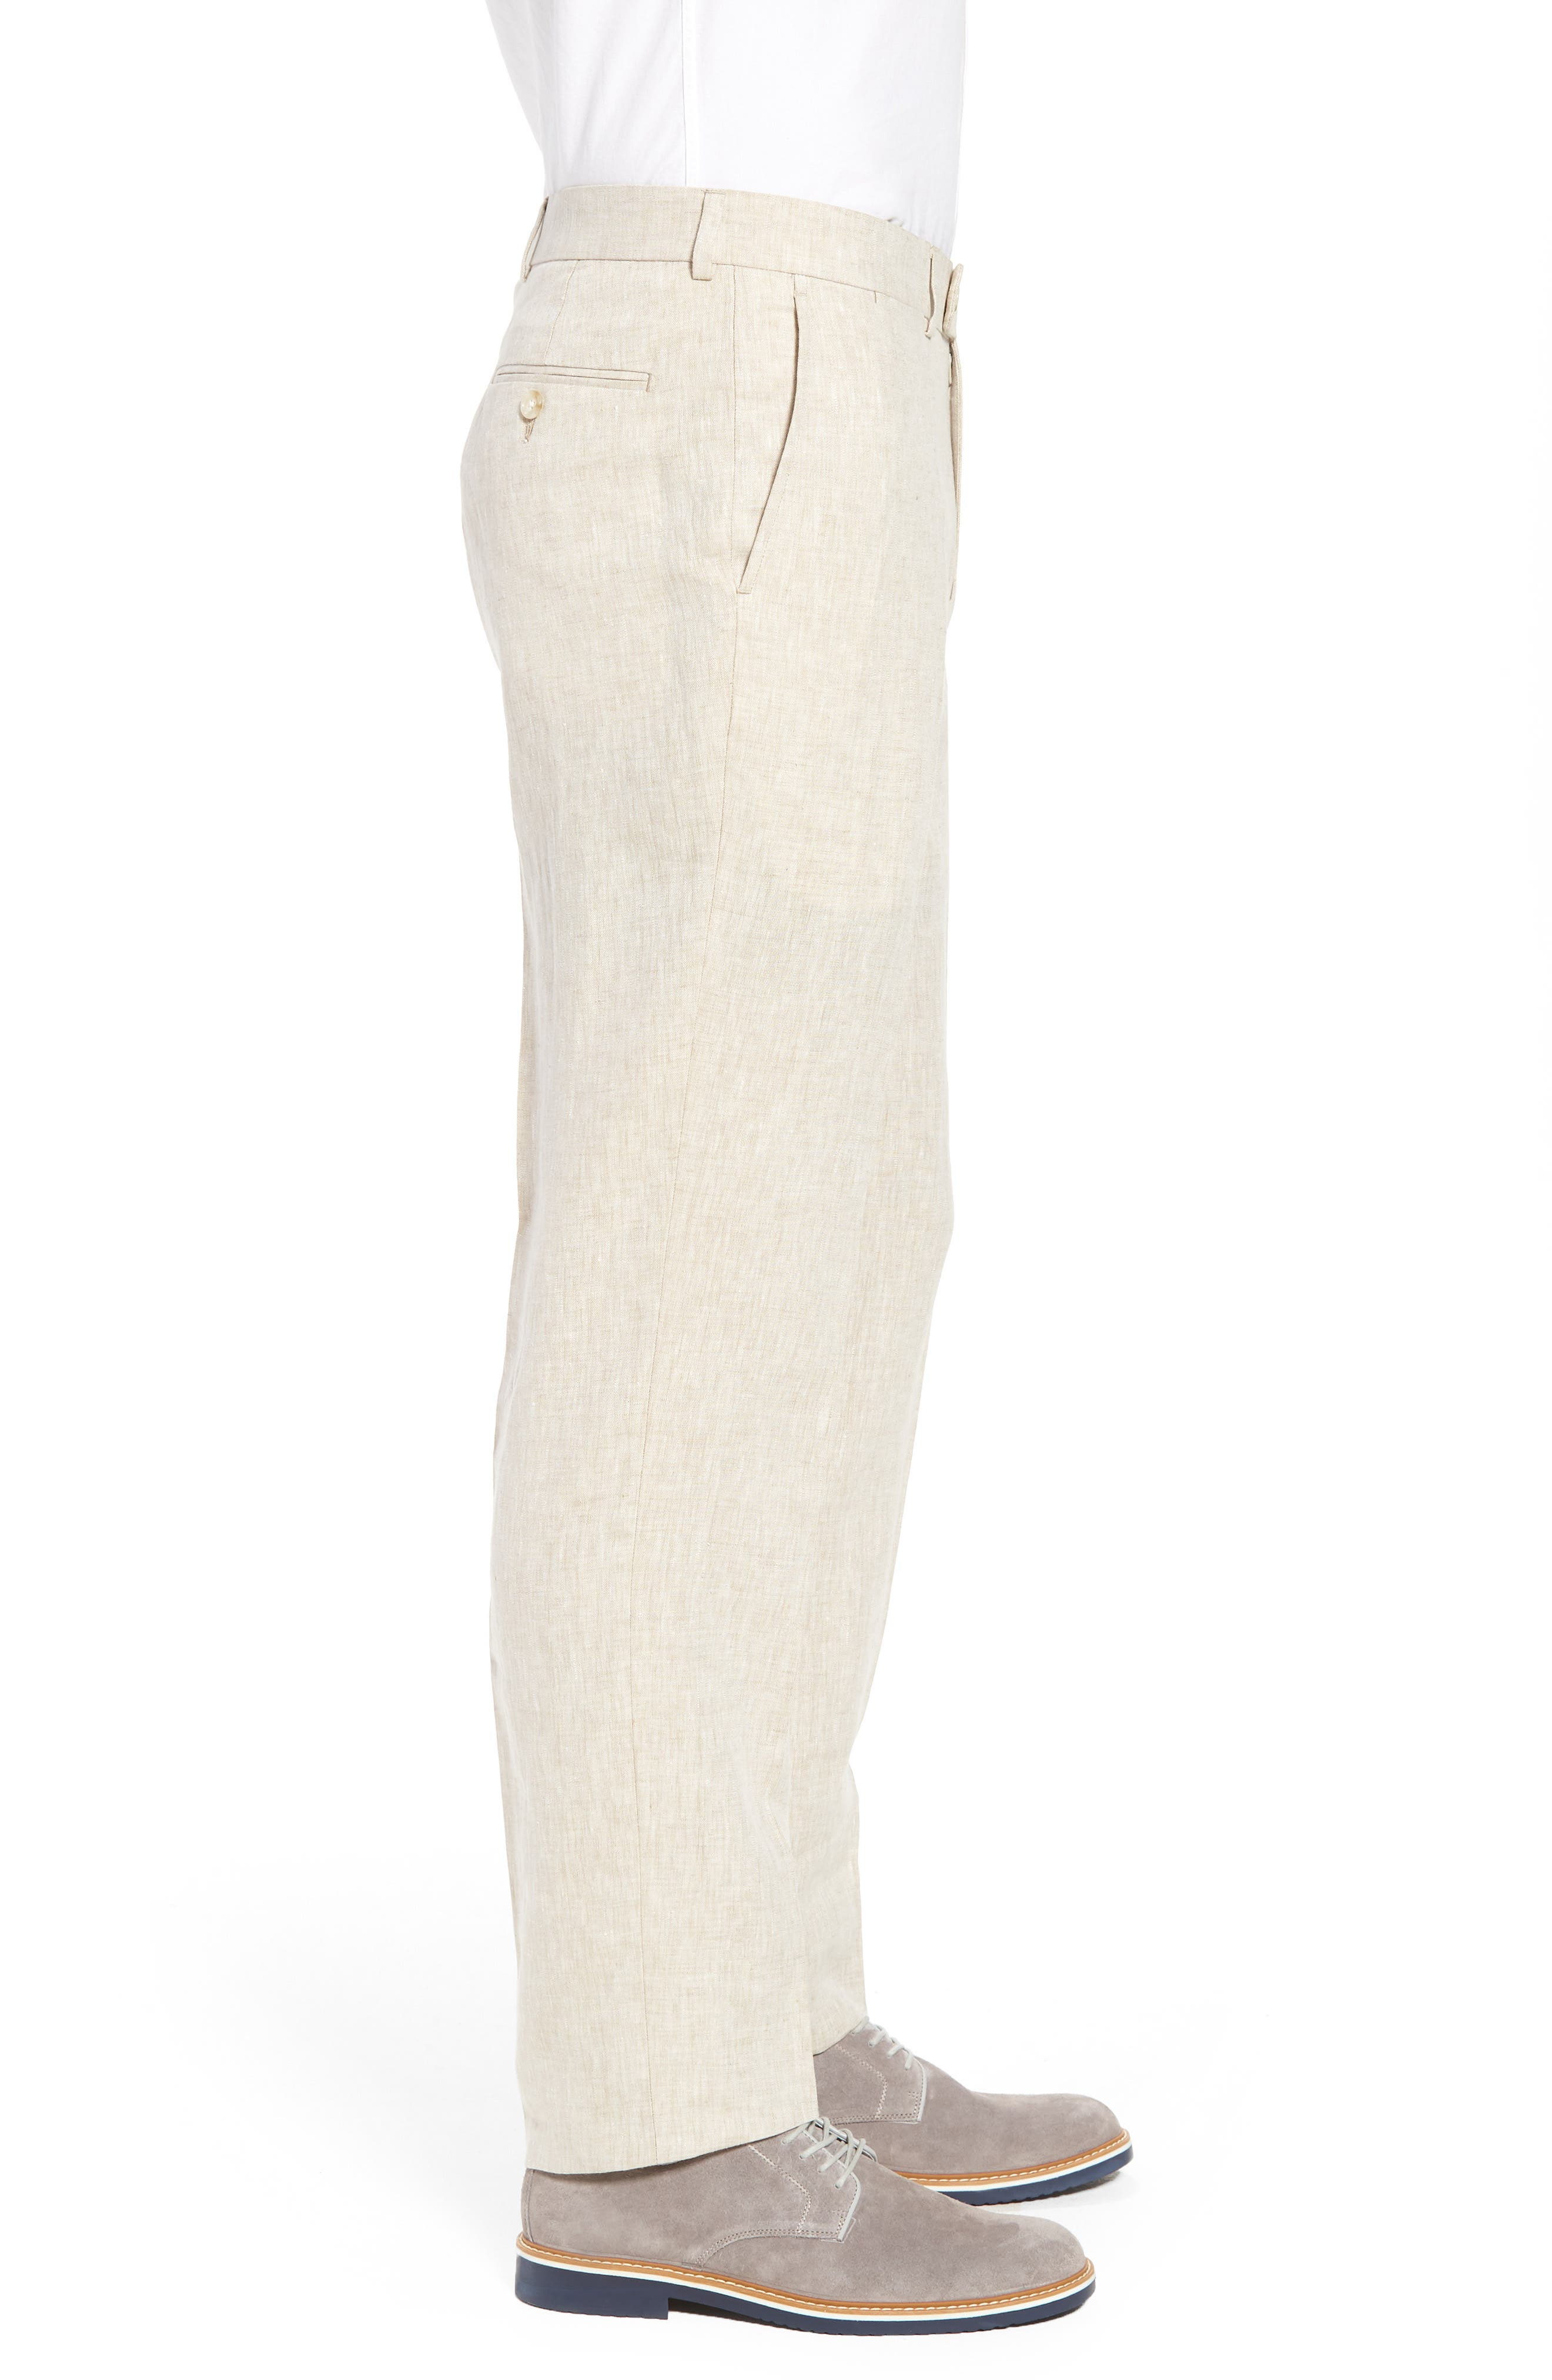 Andrew AIM Flat Front Linen Trousers,                             Alternate thumbnail 3, color,                             Natural